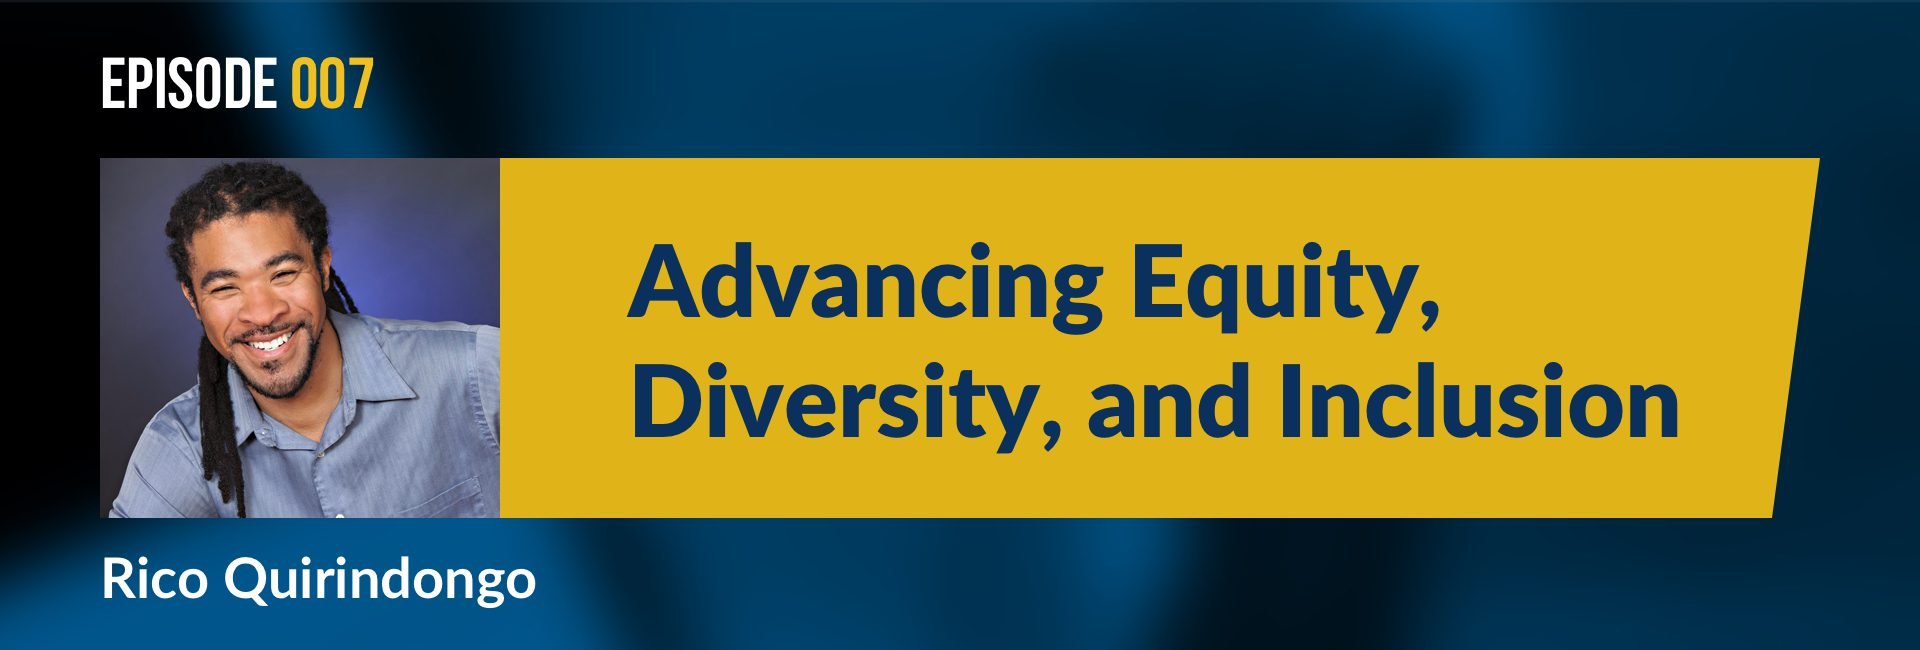 Episode 007 - Advancing Equality, Diversity, and Inclusion